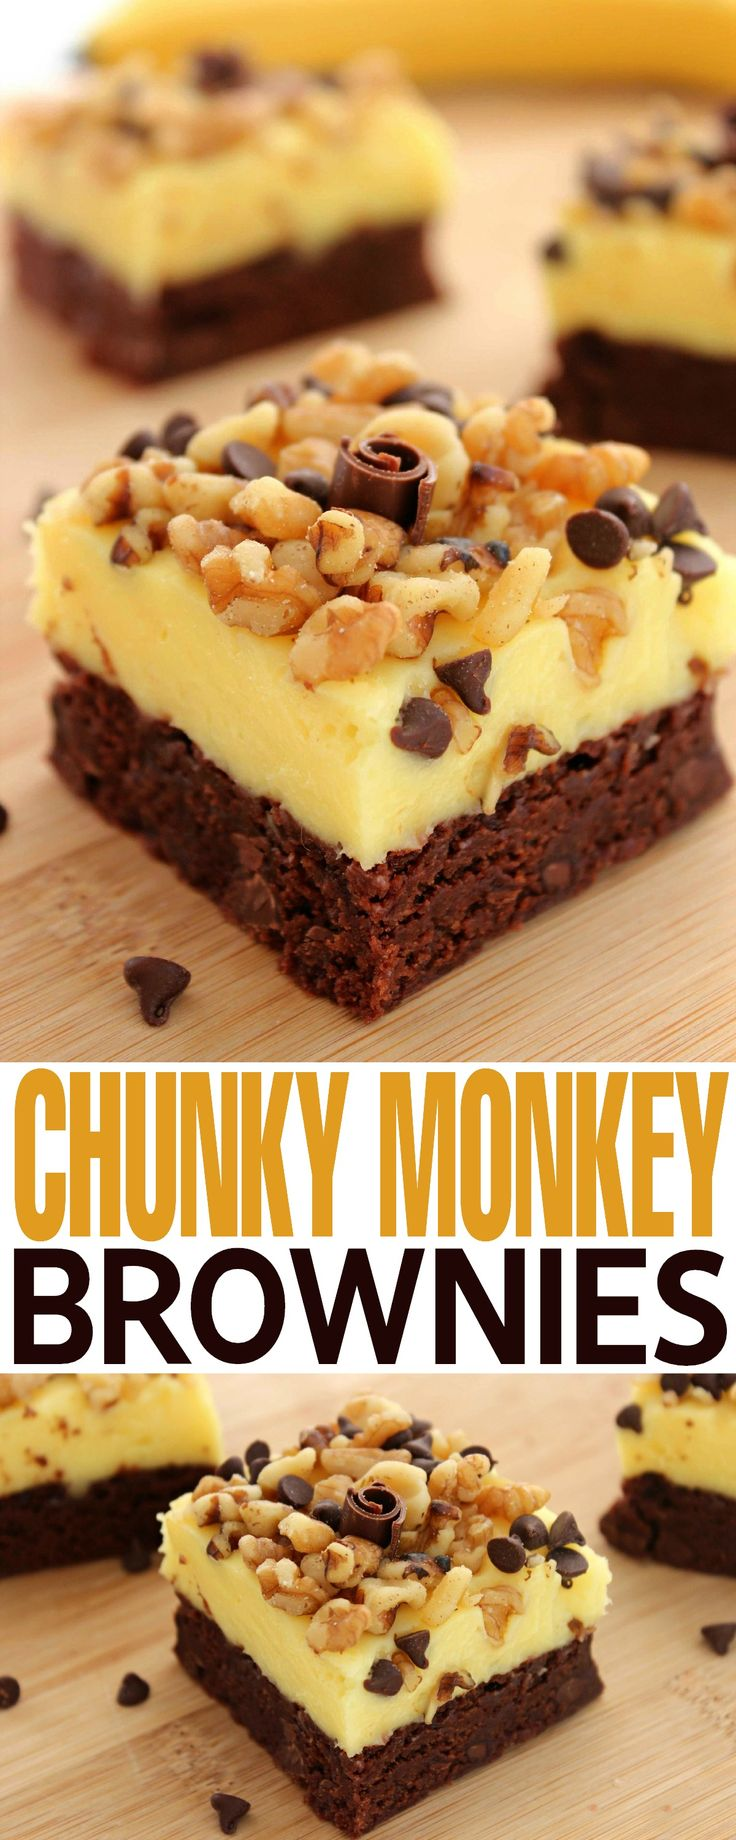 These Chunky Monkey Brownies are a perfect treat with chocolate, banana and walnuts coming together for one amazing dessert!